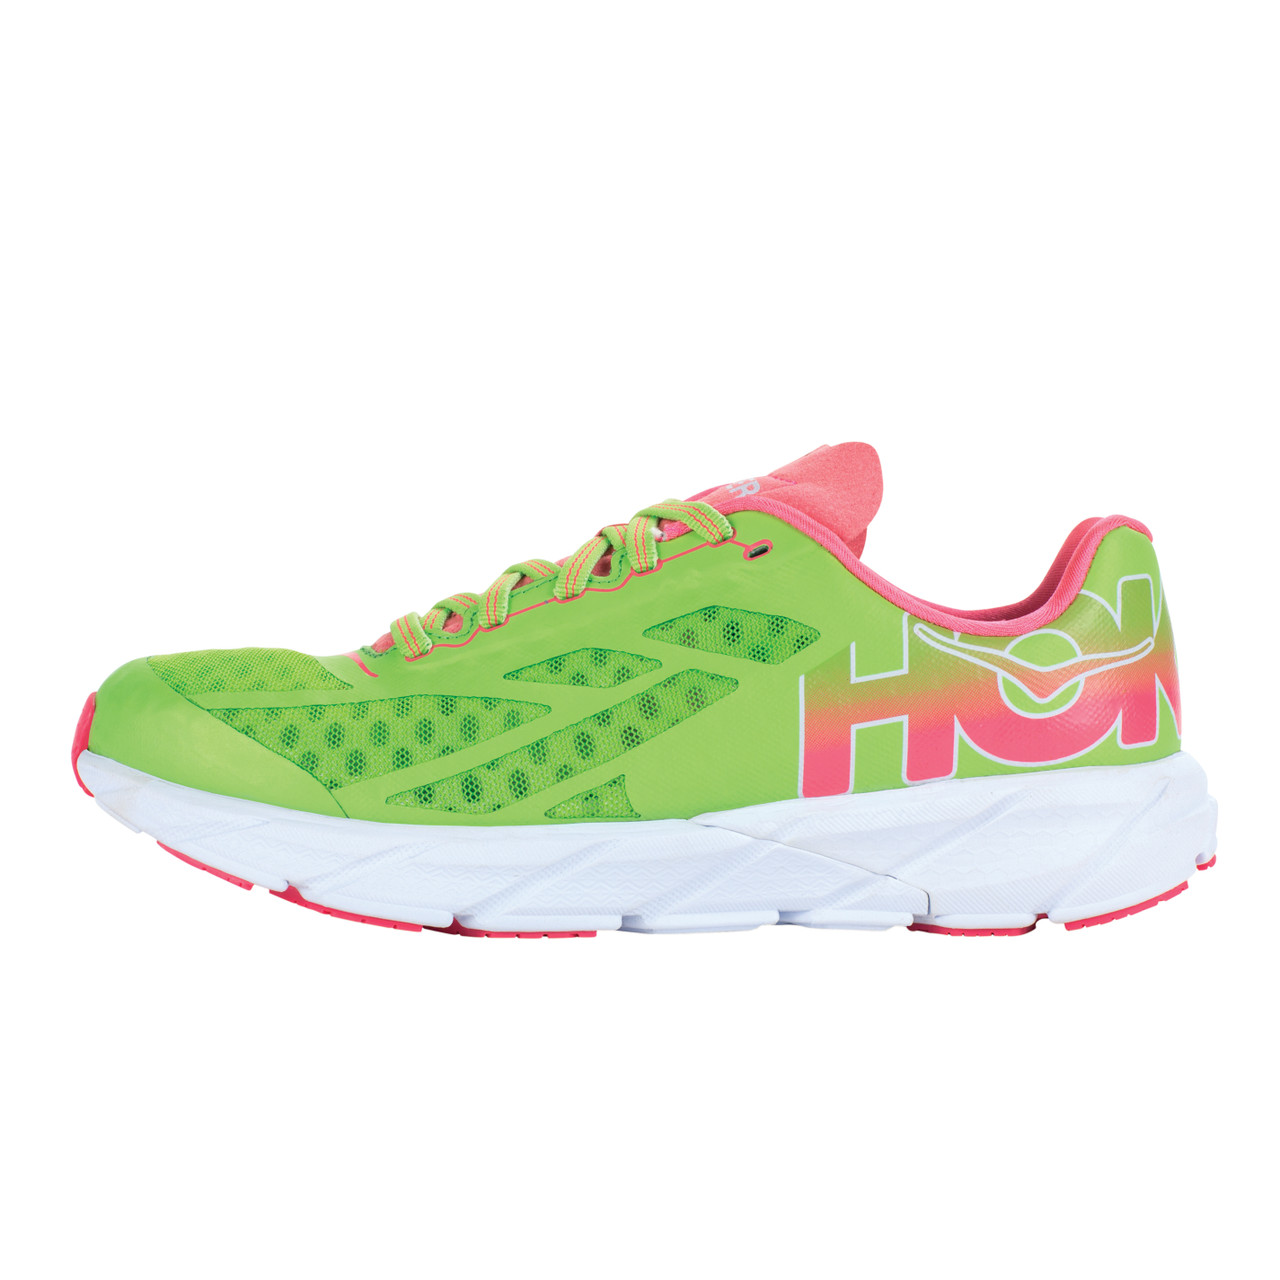 Hoka One One Women's Tracer Shoe - 2017 price